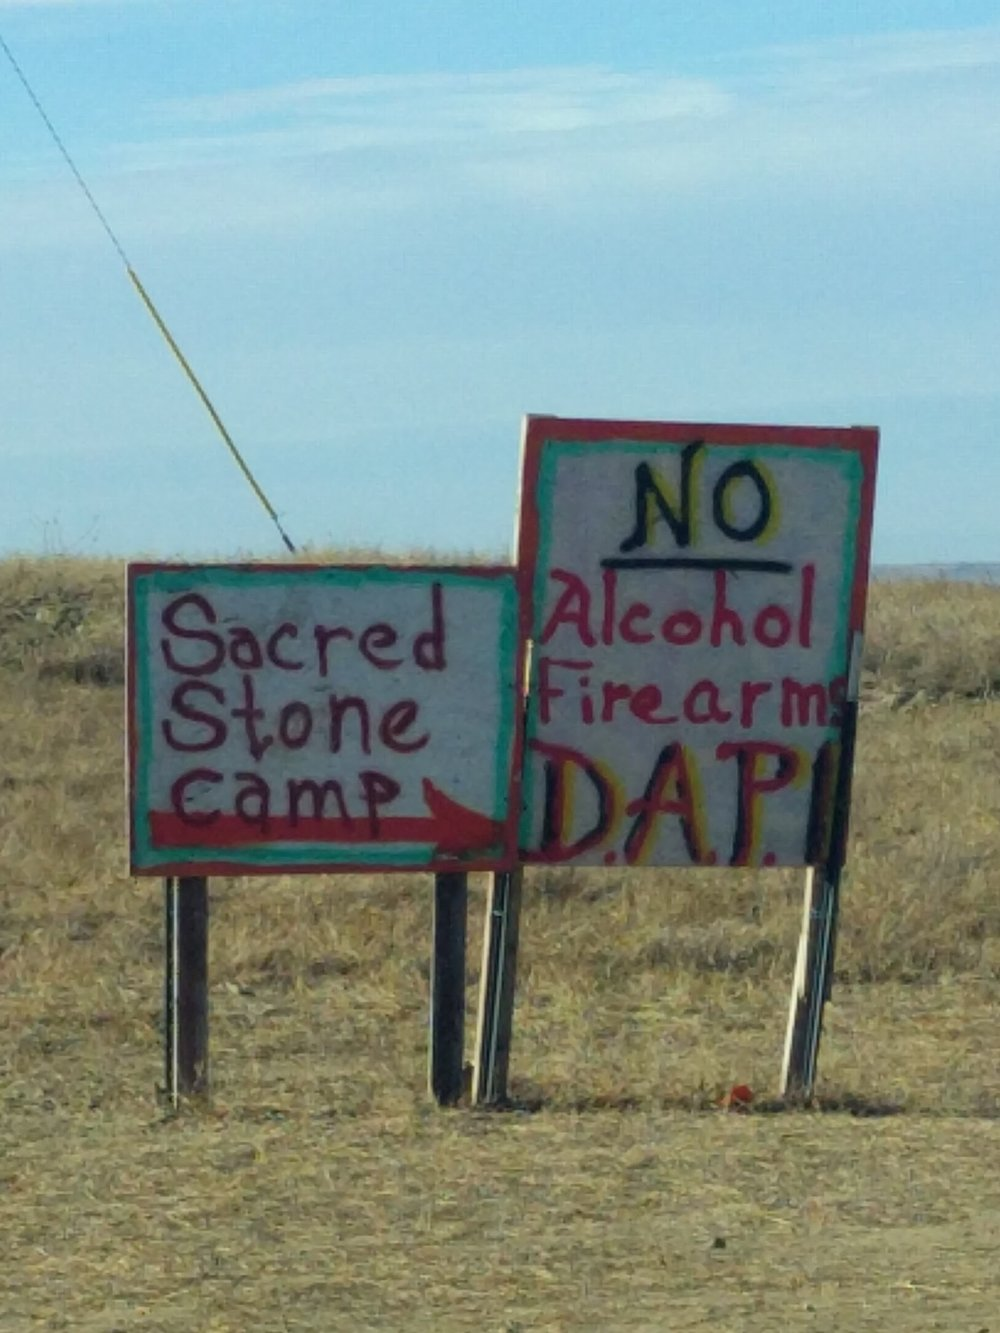 Sacred Stone Camp: No alcohol, firearms, or DAPL